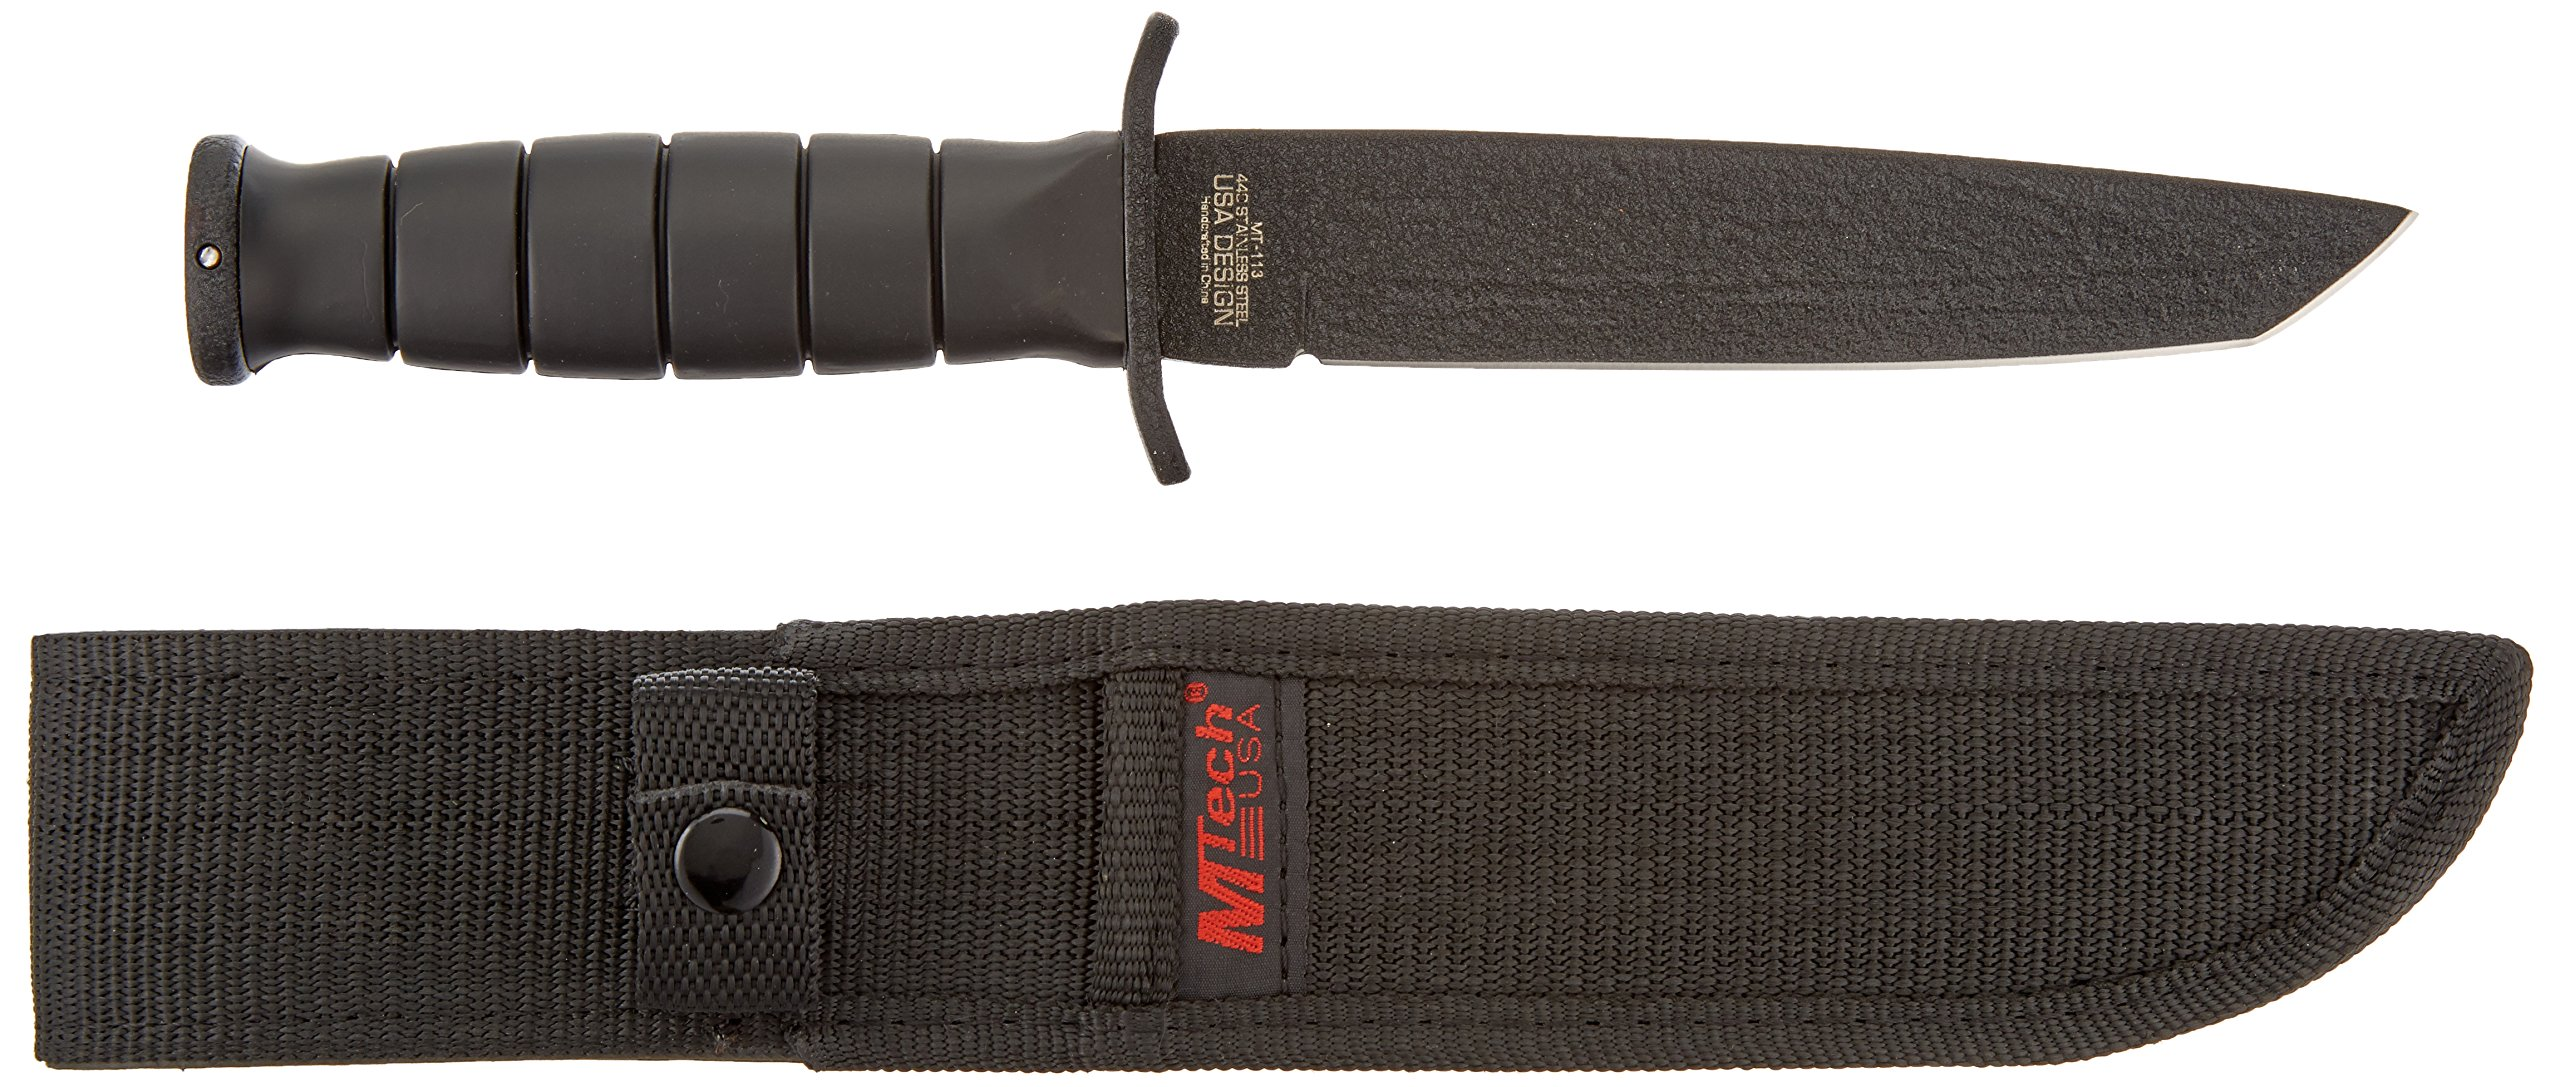 MTech USA MT-113 Rescue Team Fixed Blade Survival Knife, Black Straight Edge Tanto Blade, Black Handle, 10-1/2-Inch Overall